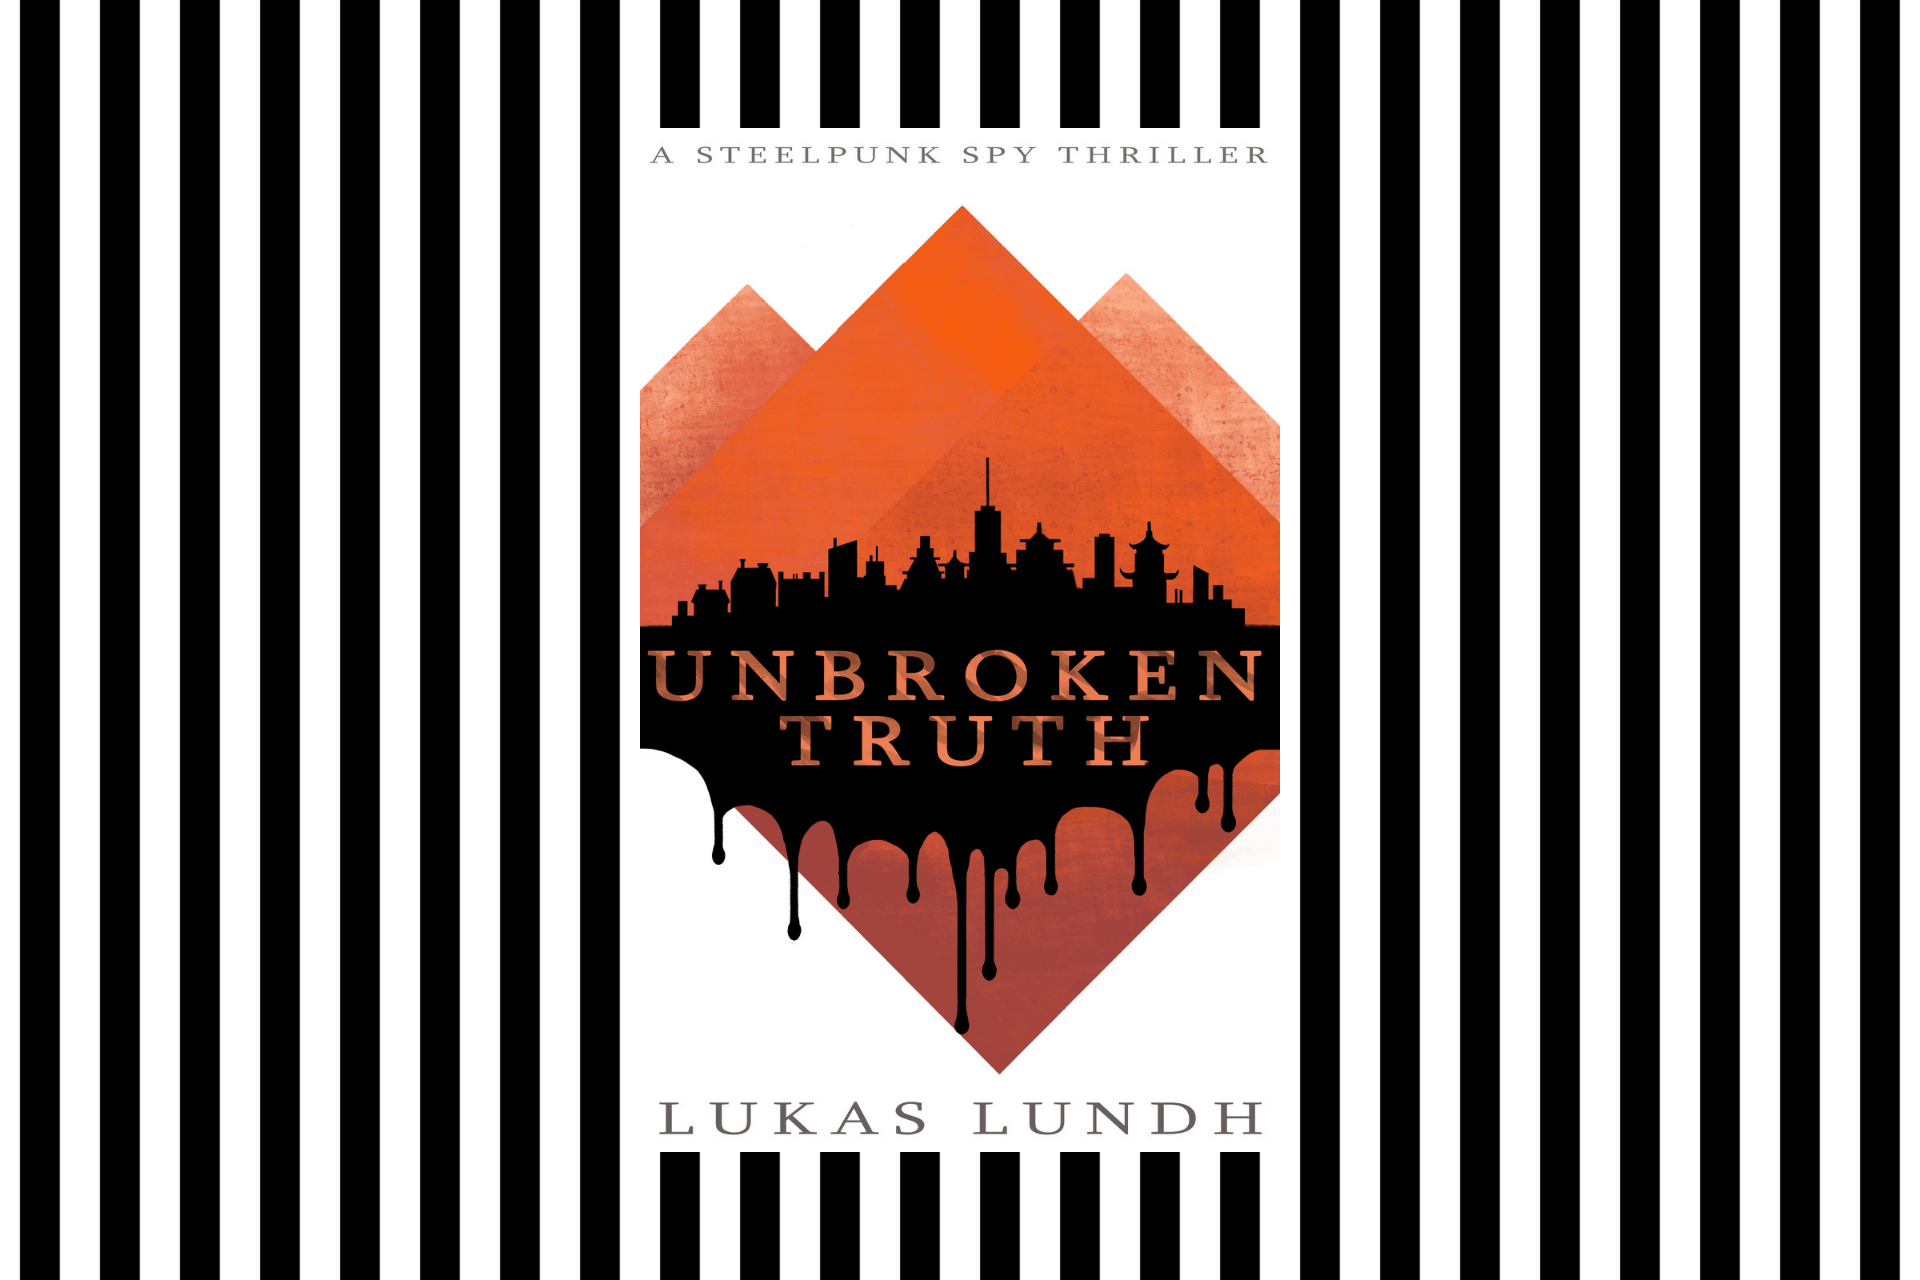 The cover of Unbroken Truth by Lukas Lundh